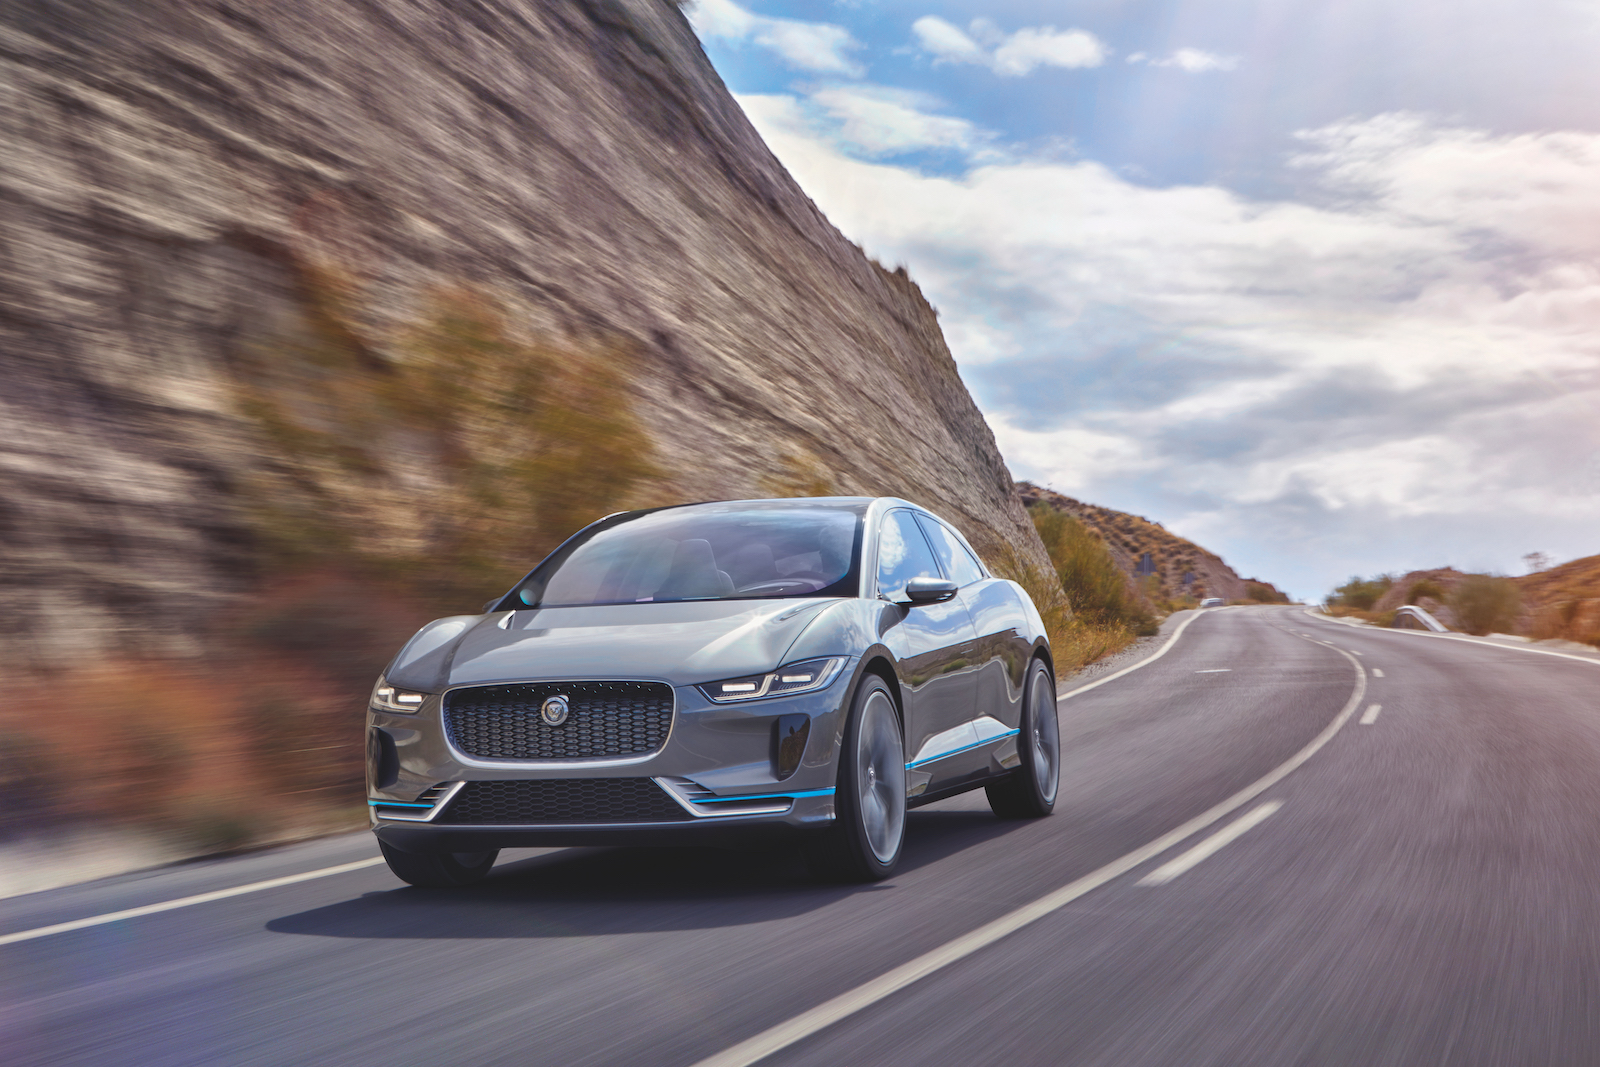 new-electric-jaguar-i-pace-crossover-concept-3